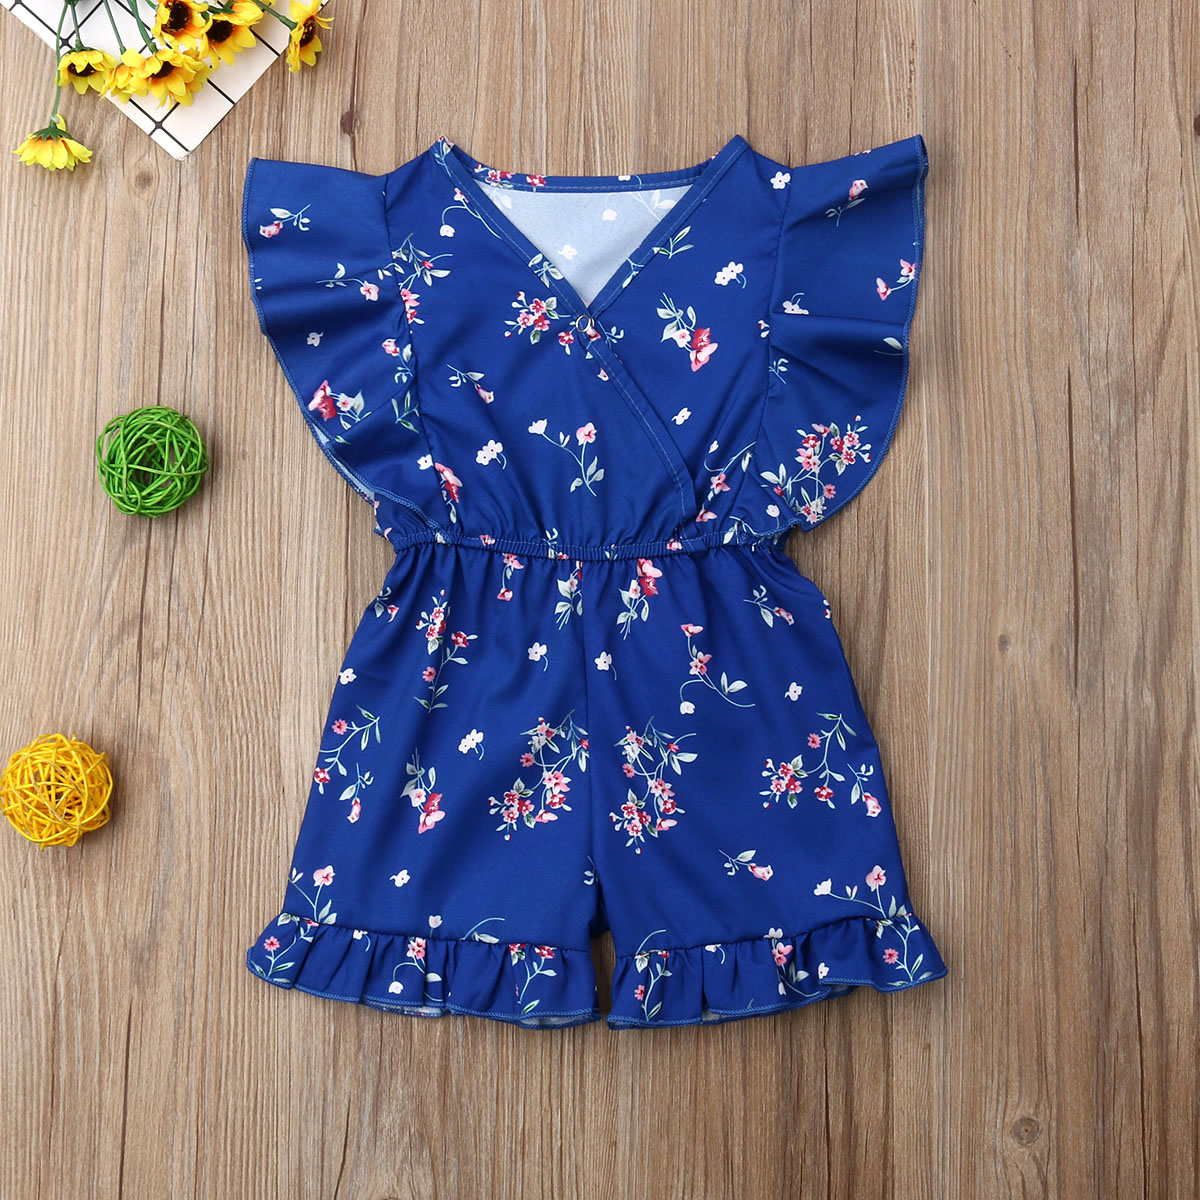 Newborn Baby Girl Clothes Flower Print Fly Sleeve Ruffle   Romper   Jumpsuit Sunsuit Outfit Clothes